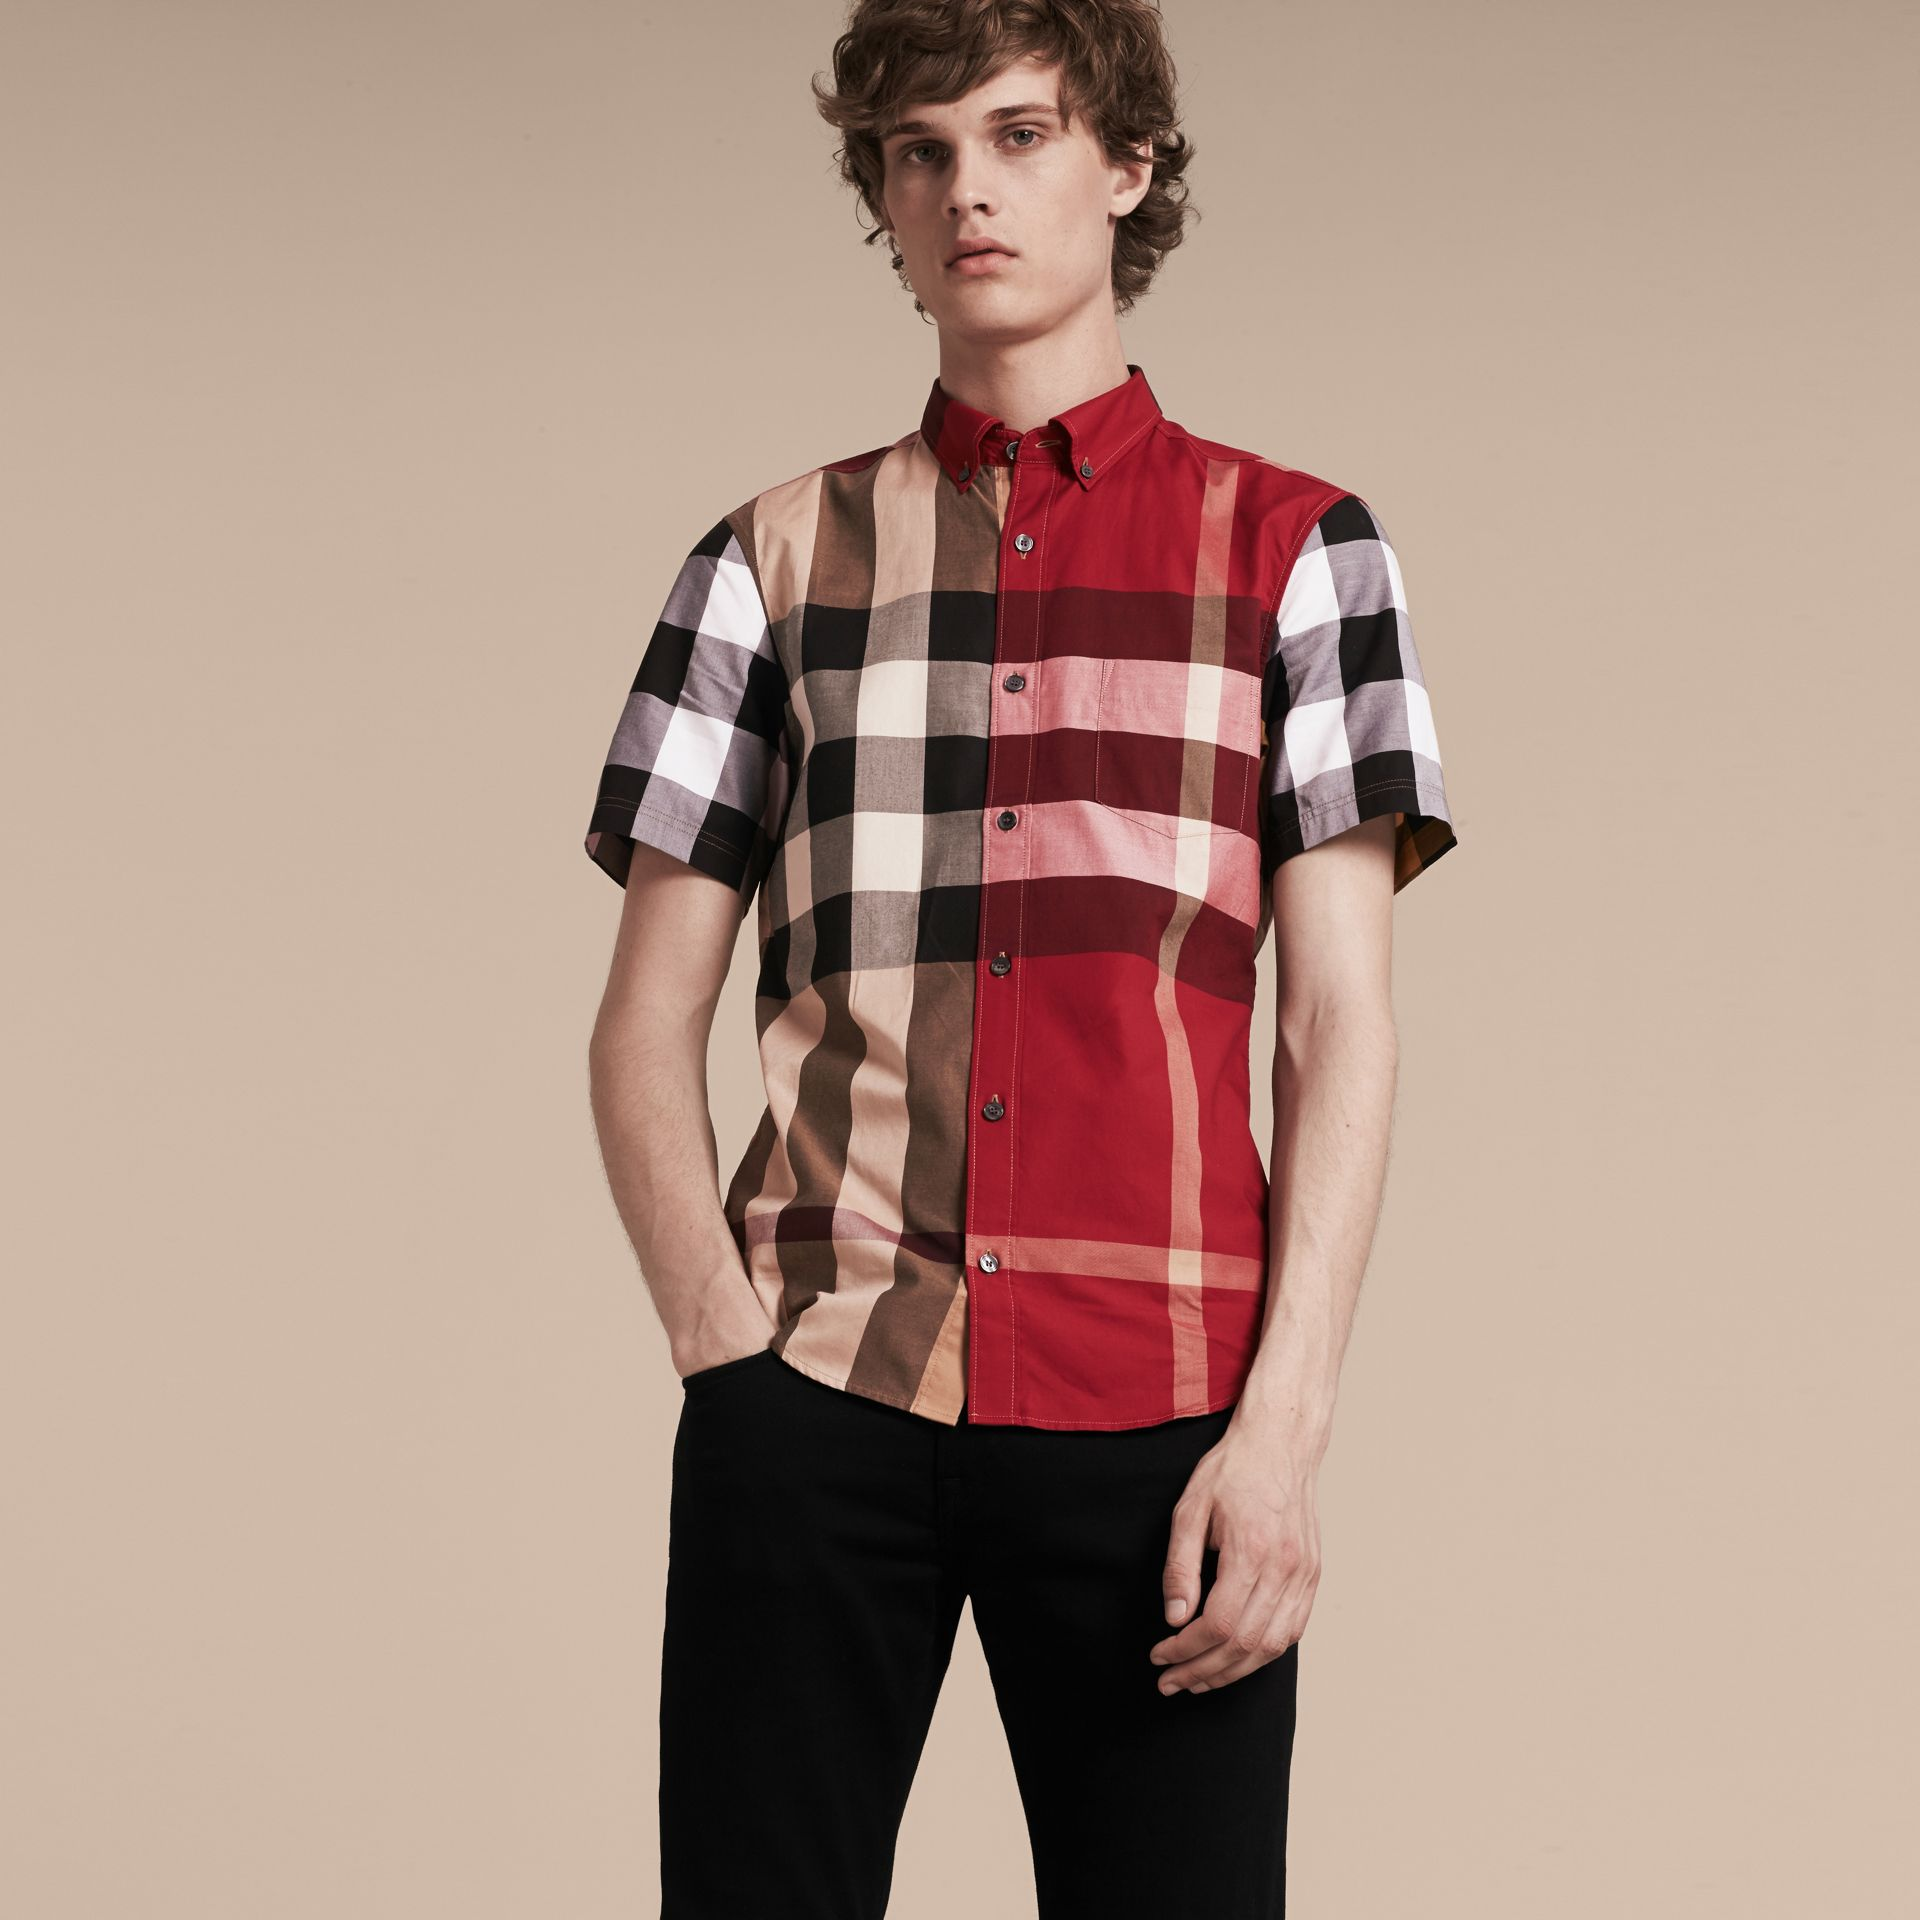 Camel Short-sleeved Colour Block Check Cotton Shirt Camel - gallery image 6